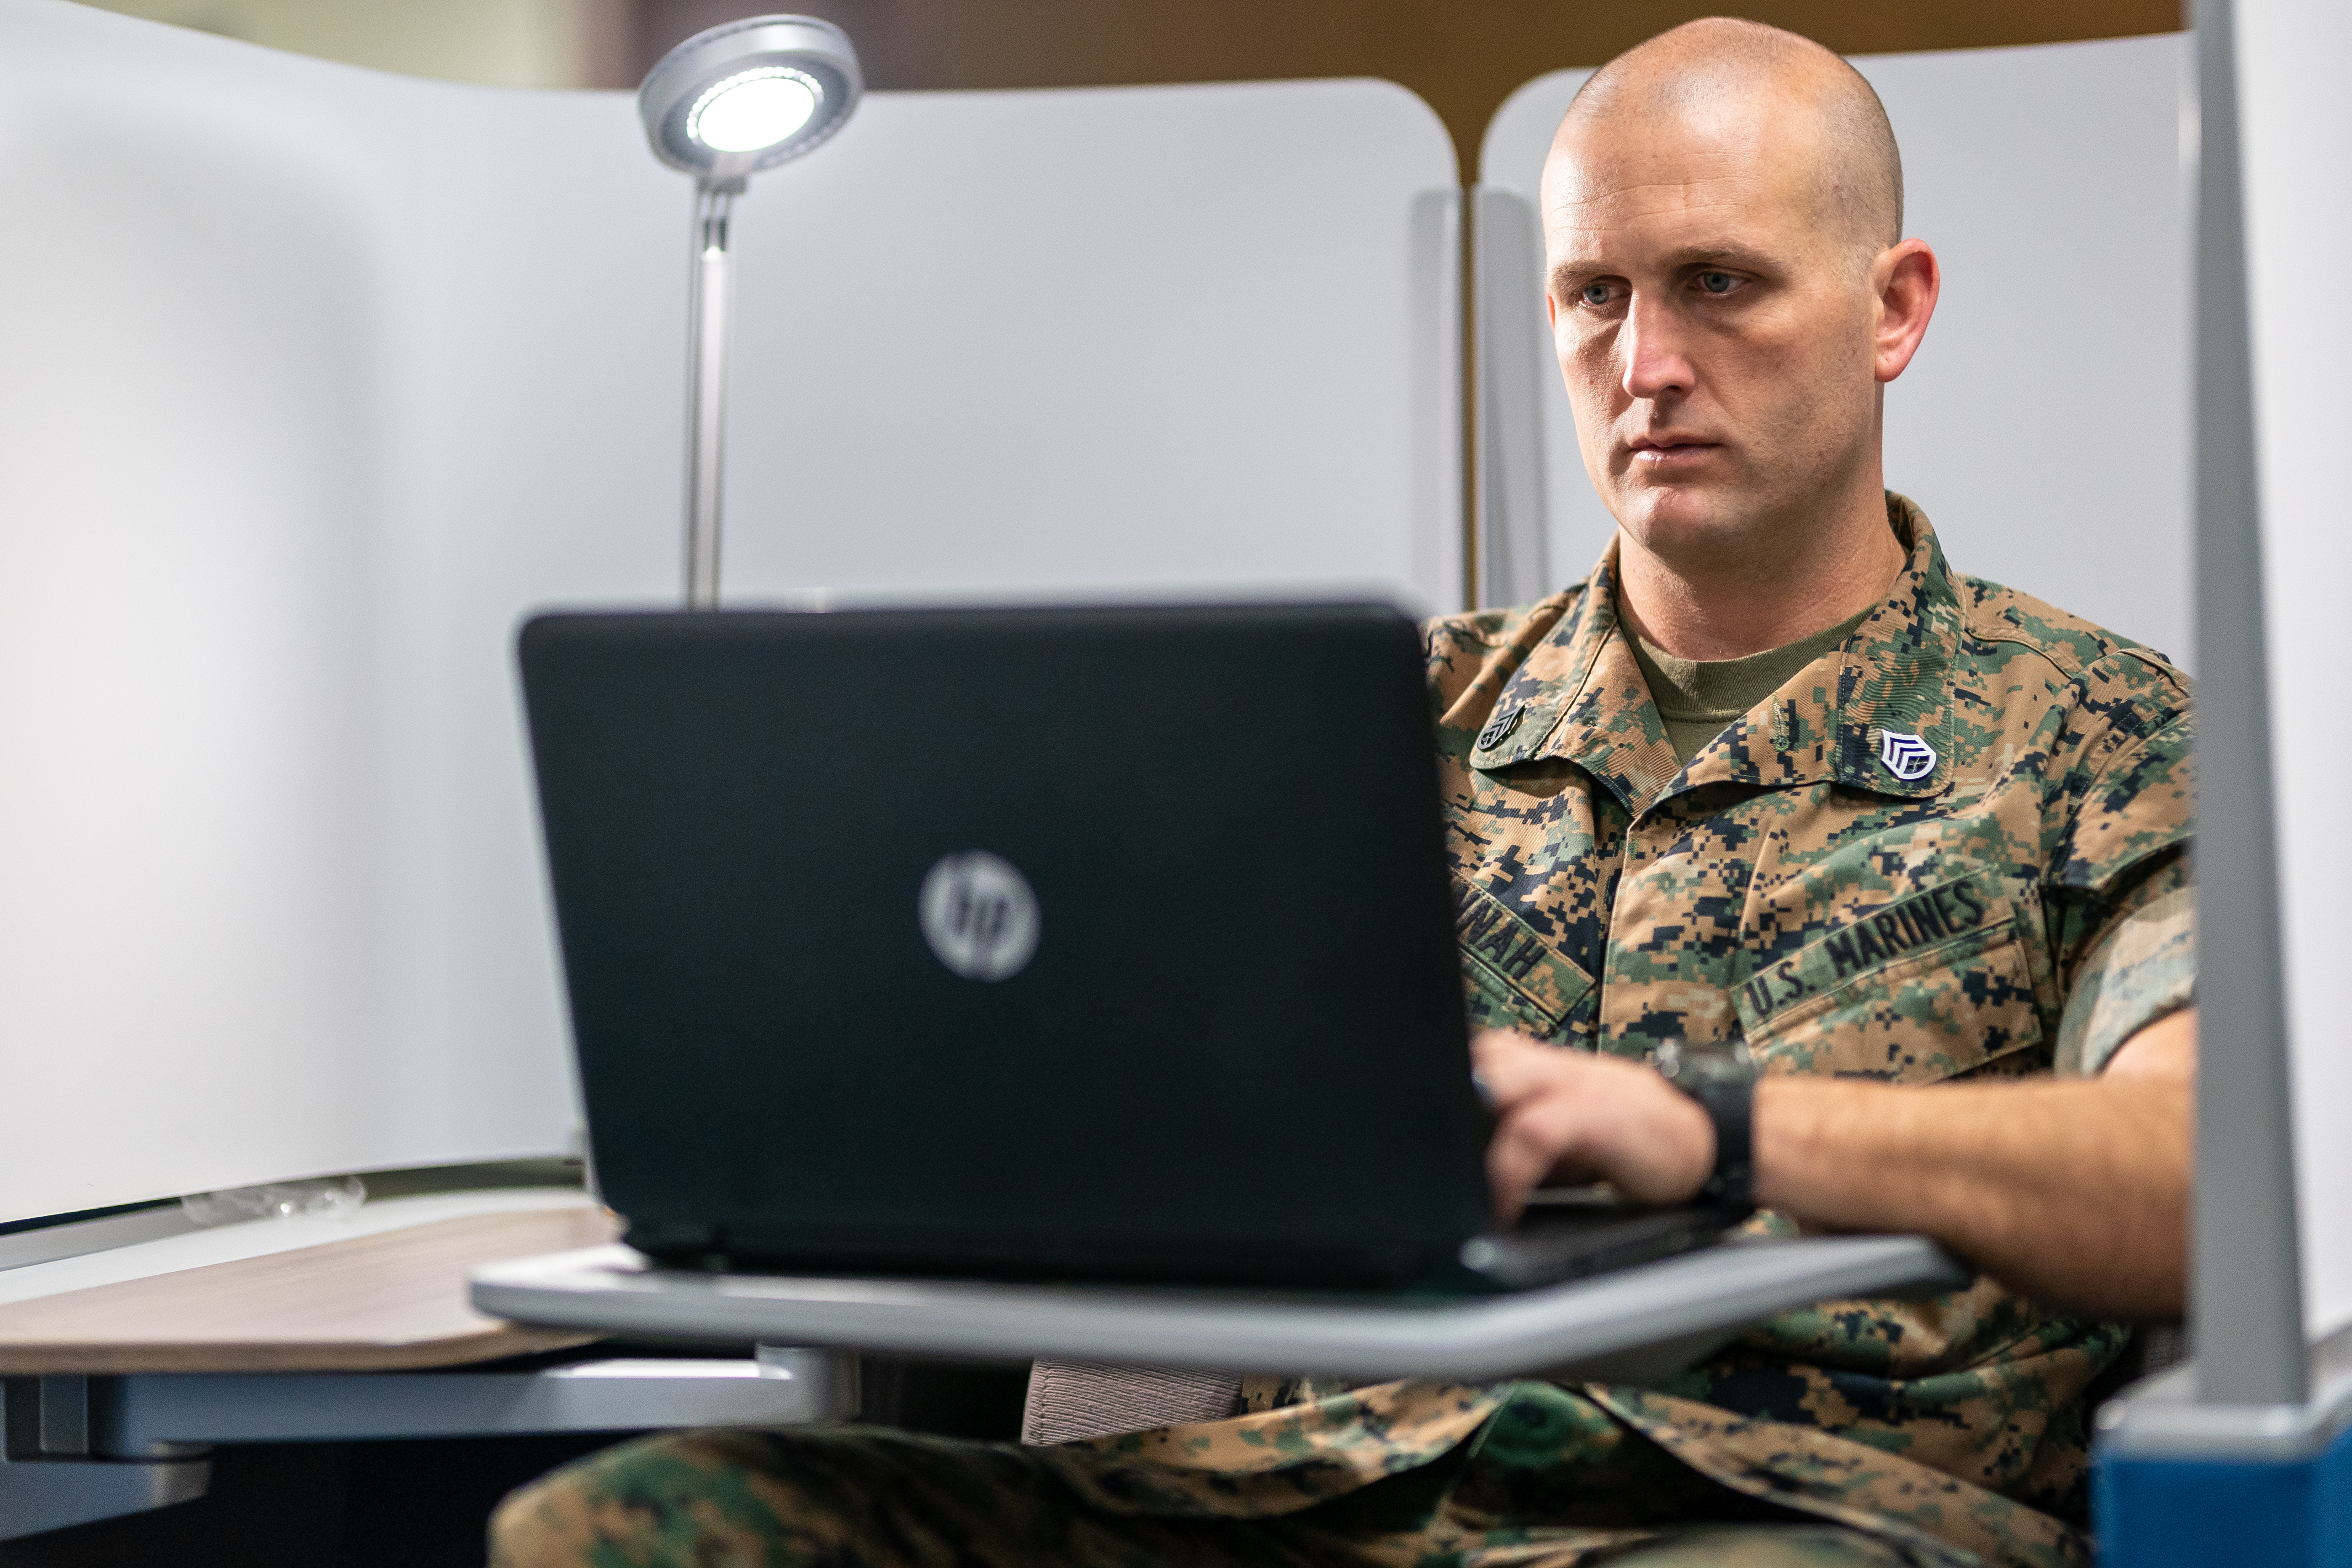 Servicemen studying with a laptop